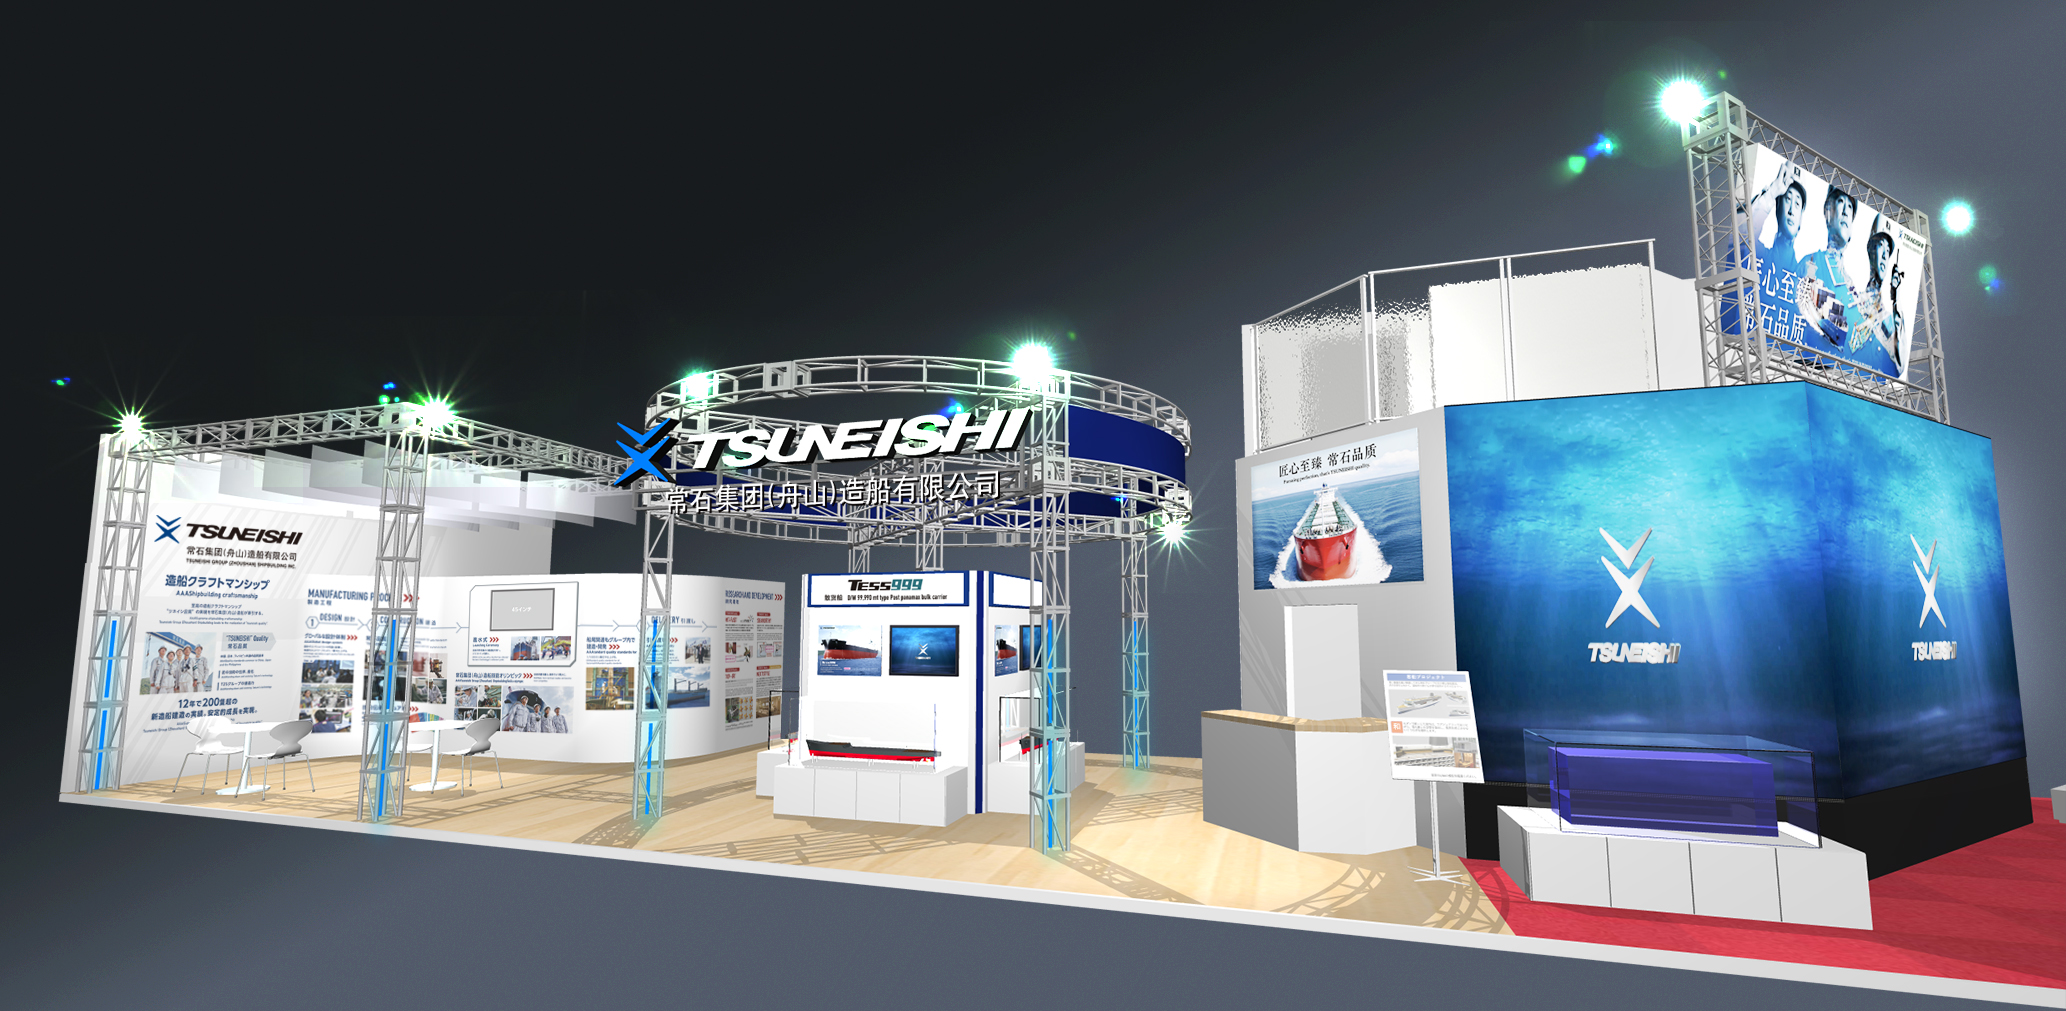 TSUNEISHI GROUP (ZHOUSHAN) SHIPBUILDING exhibits at Marintec China 2019, Asia's largest international maritime exhibition: Introducing TSUNEISHI Quality to the world